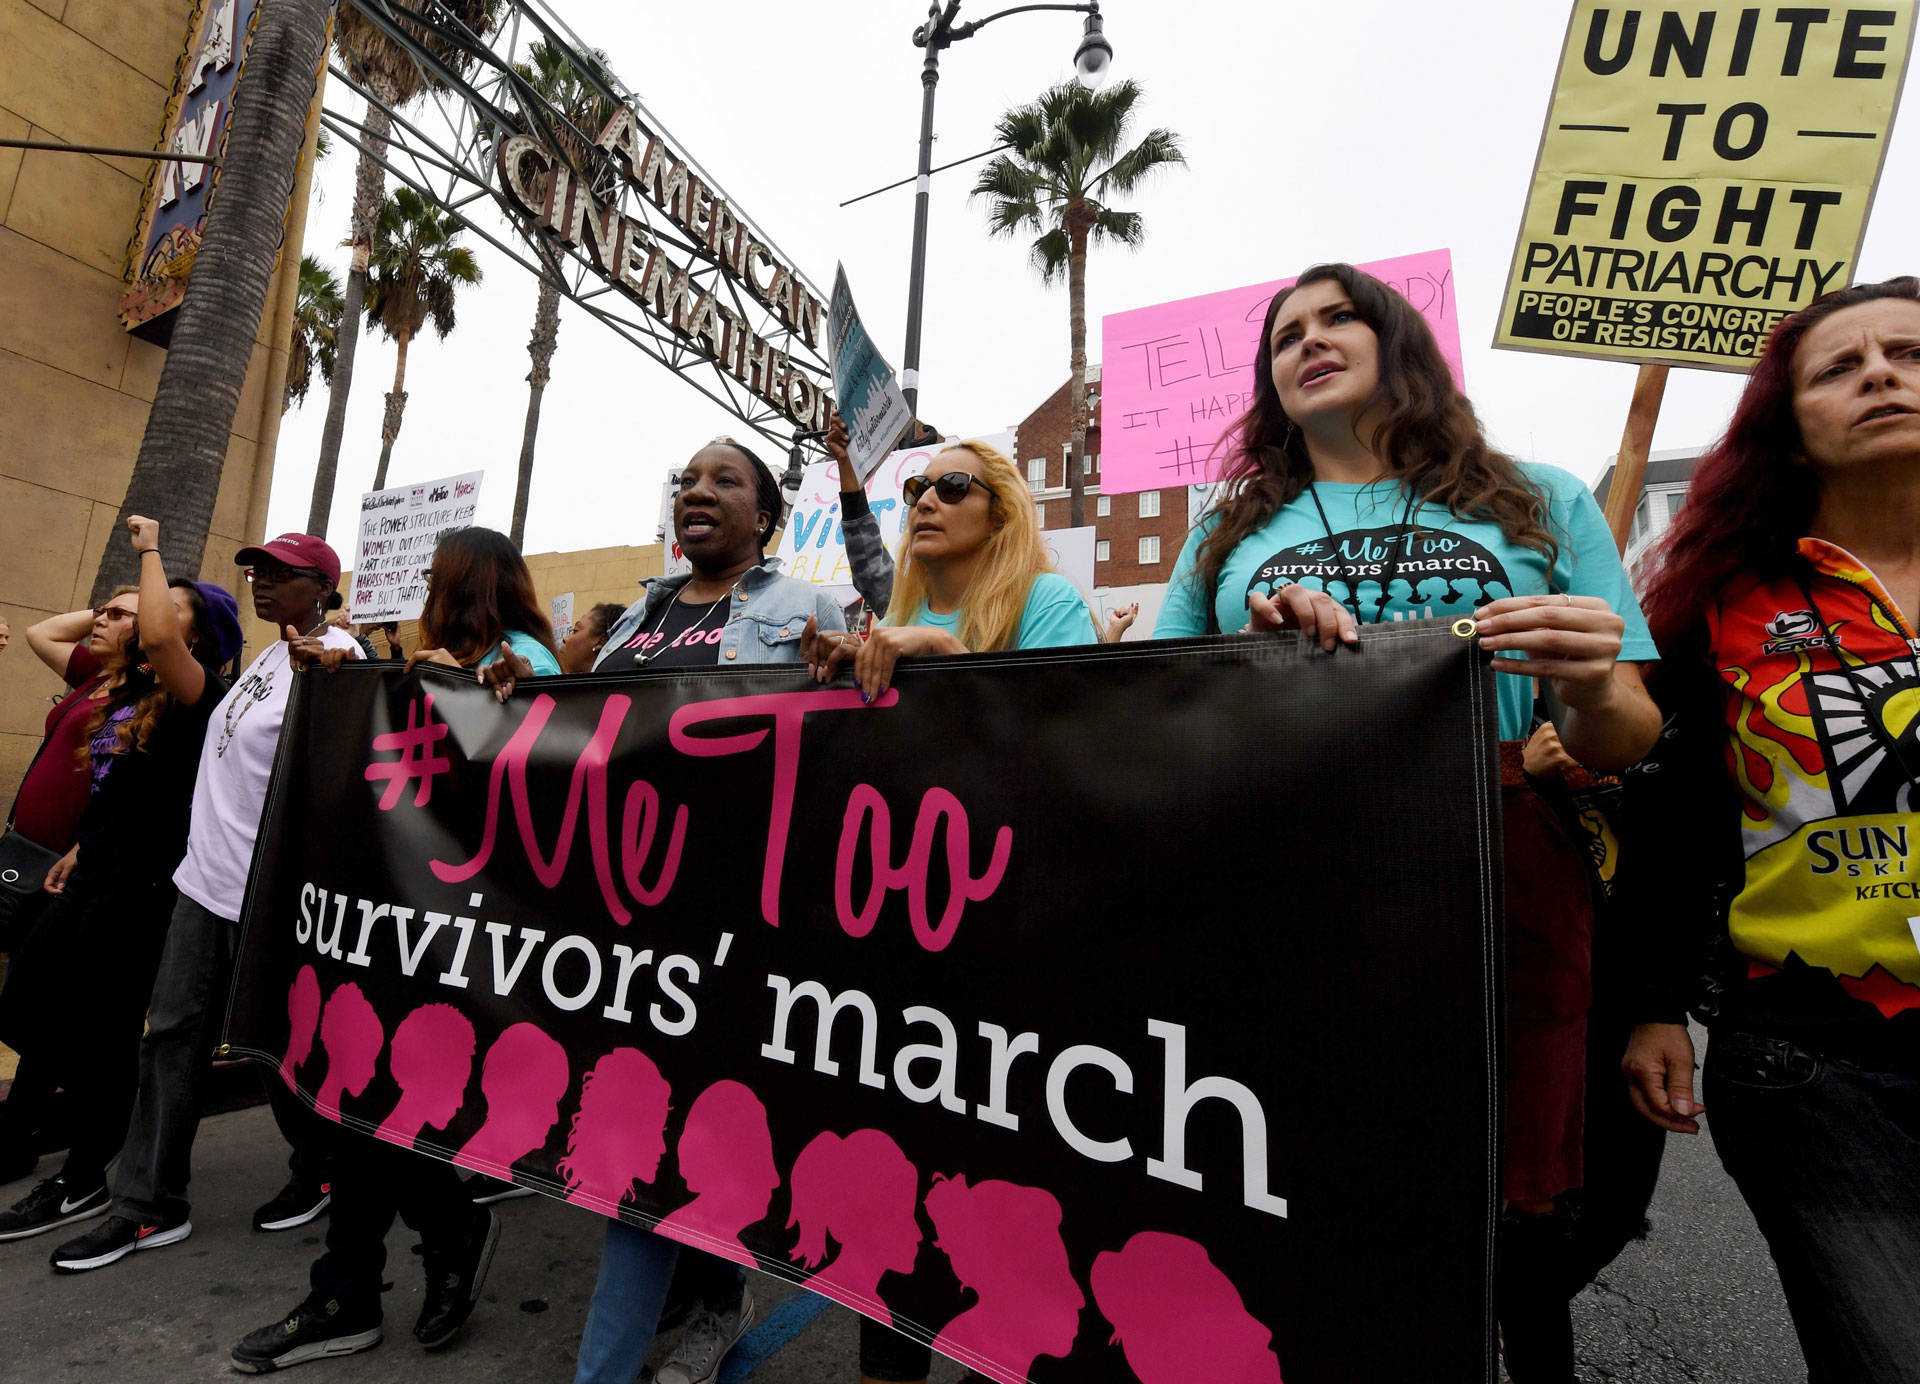 Victims of sexual harassment, sexual assault, sexual abuse and their supporters protest during a #MeToo march in Hollywood on Nov. 12, 2017. MARK RALSTON/AFP/Getty Images